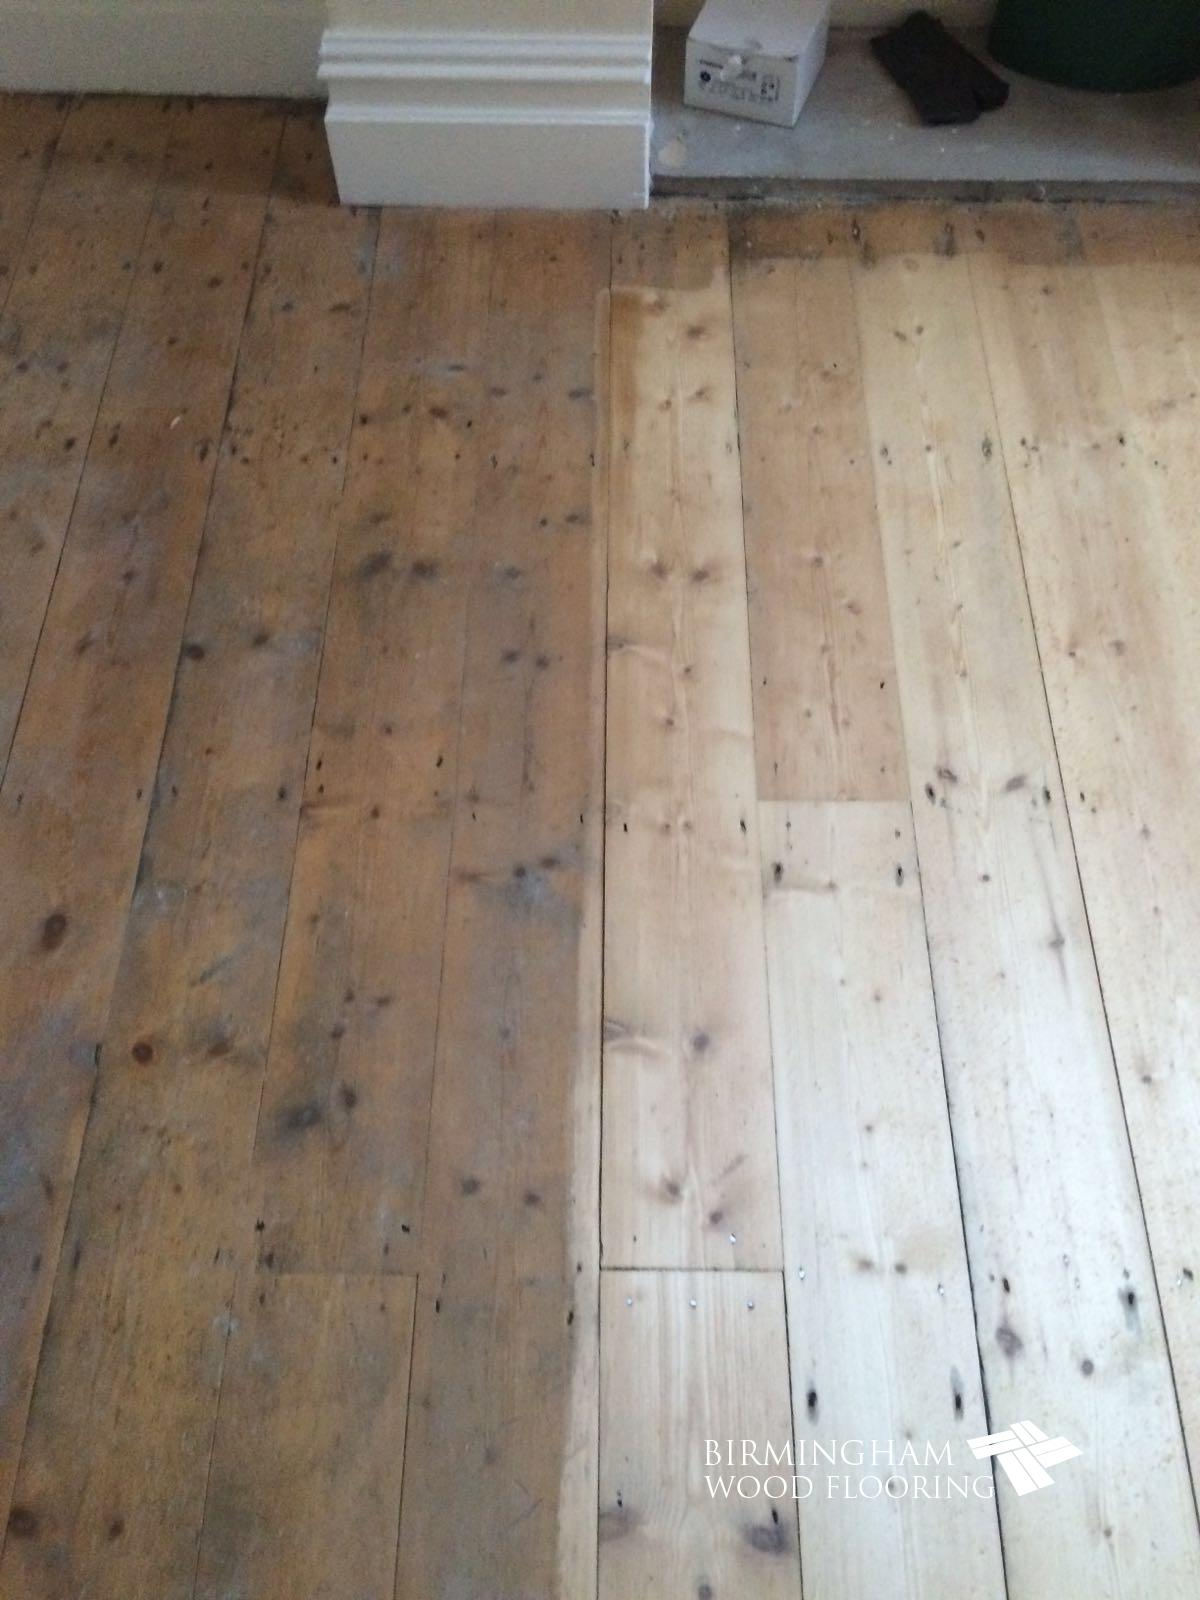 Wood-floor-being-sanded-1